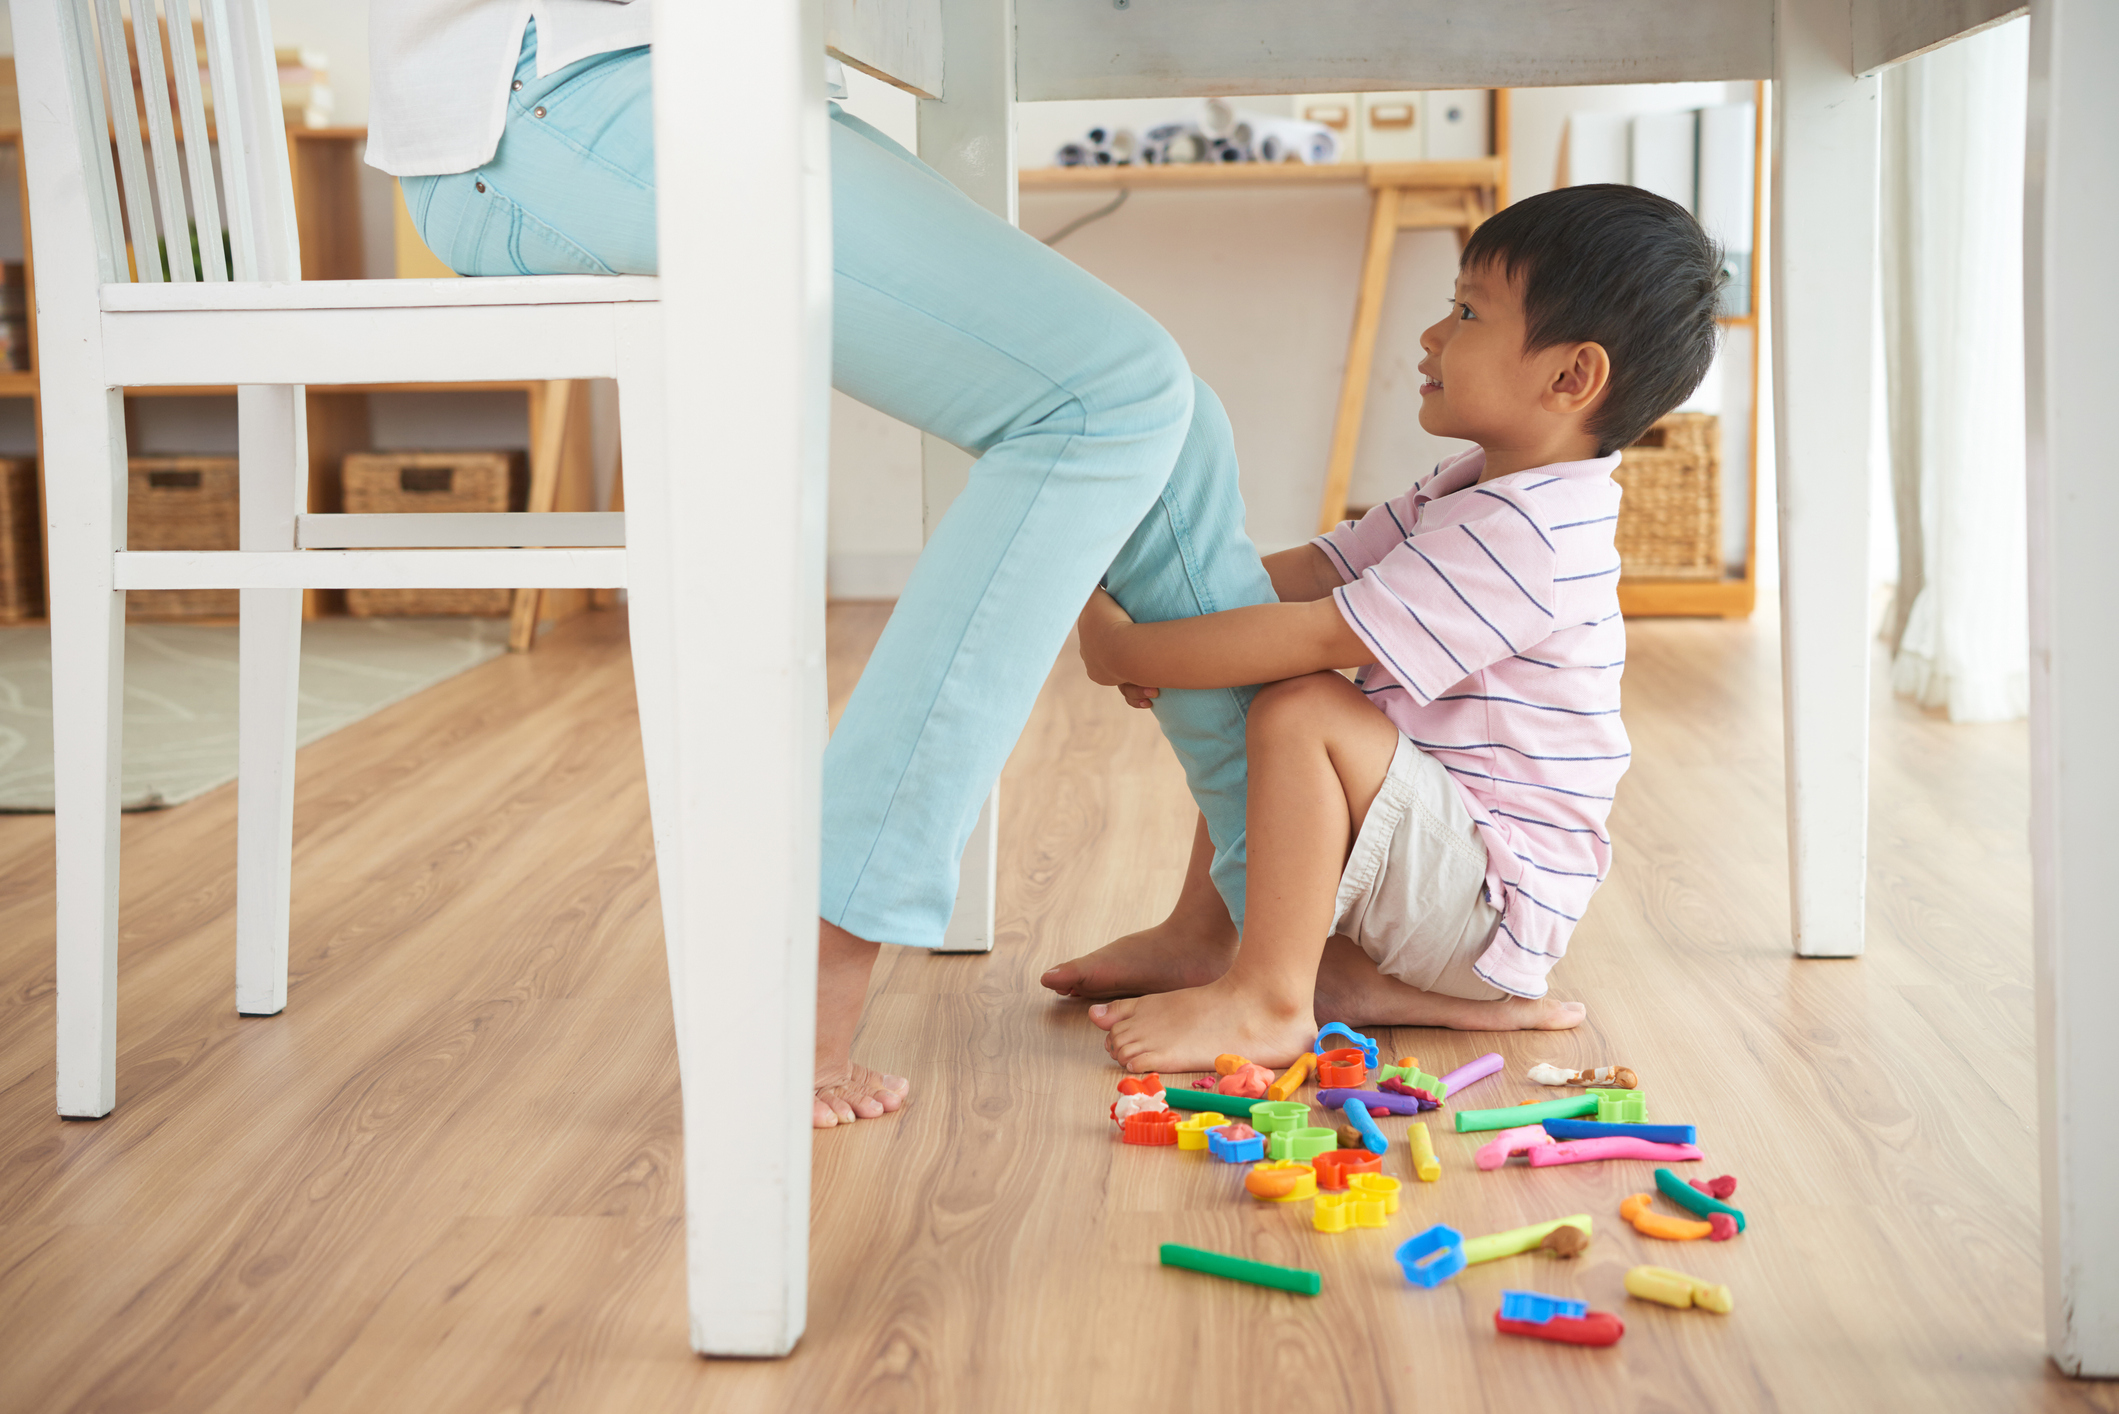 How to Balance Being Productive vs. Being Present | Parent Cue Blog